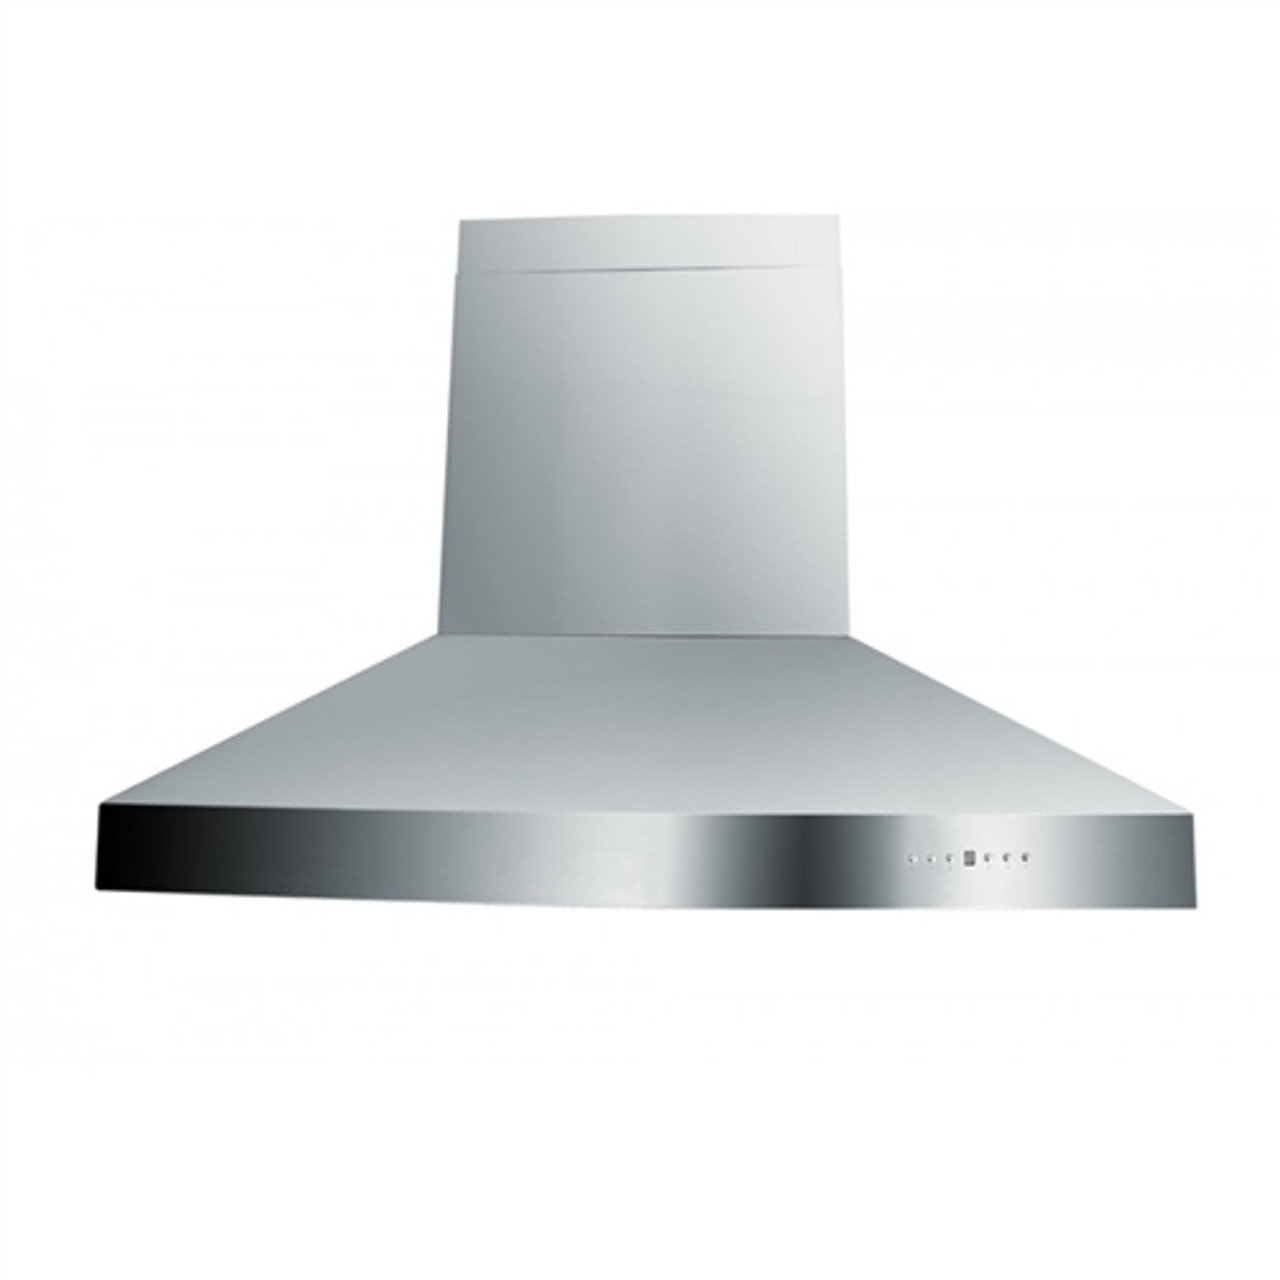 48 Stainless Steel Outdoor Vent Hood Wall Mount